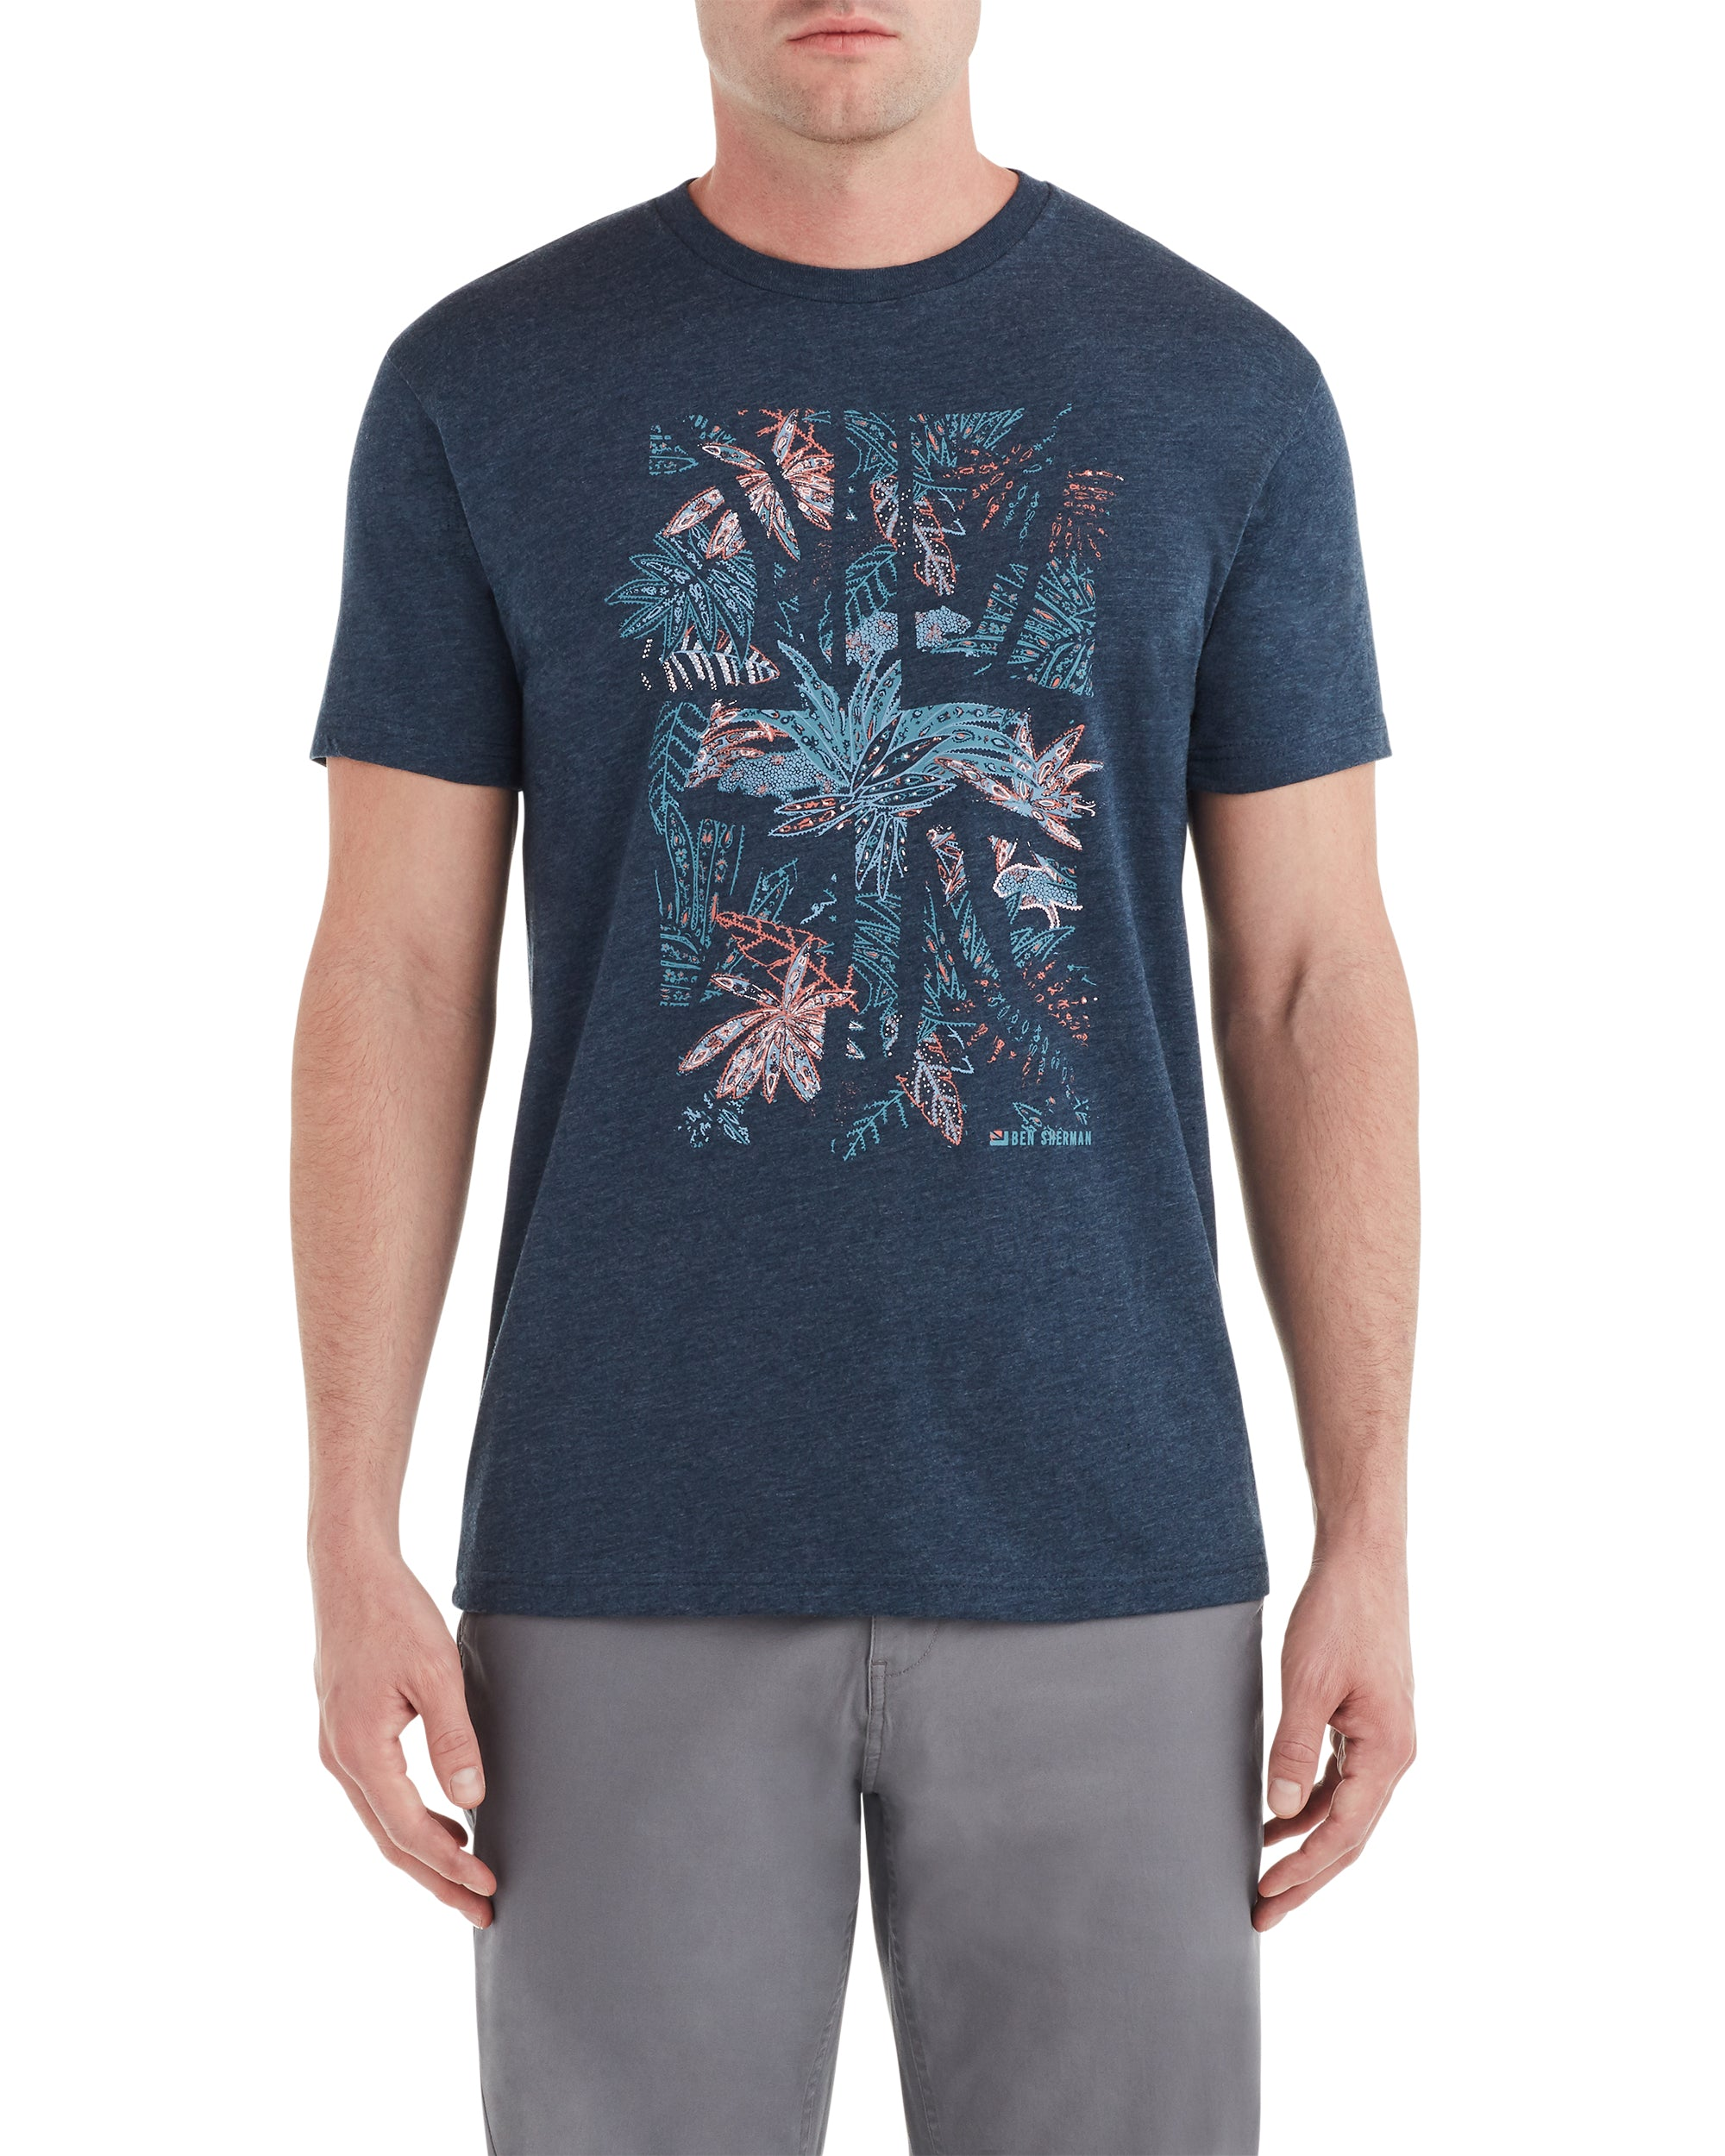 Tropical Union Jack Graphic Tee - Midnight Navy